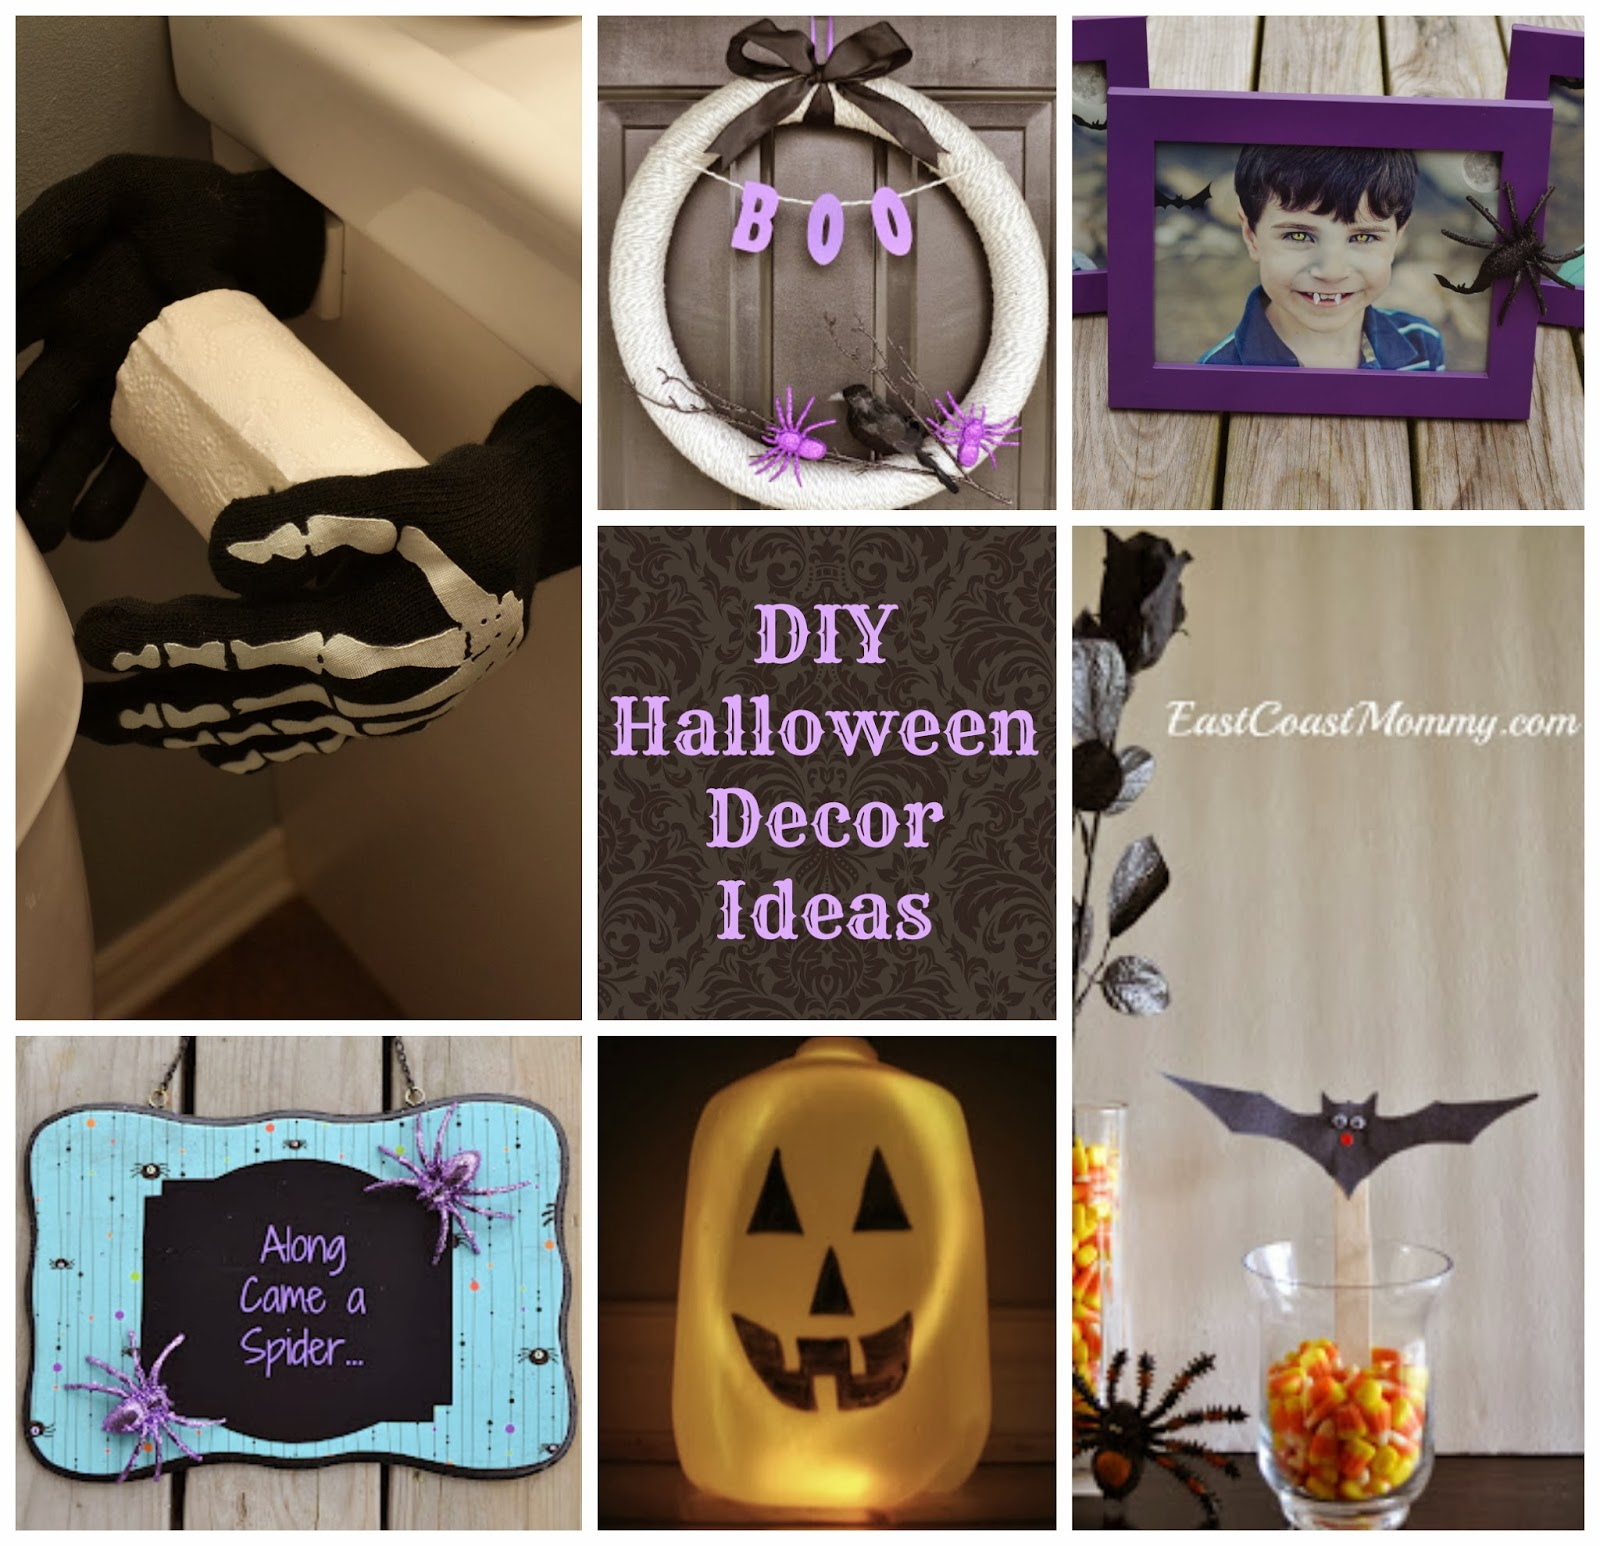 Best East Coast Mommy 7 Fantastic Diy Halloween Decor Ideas This Month